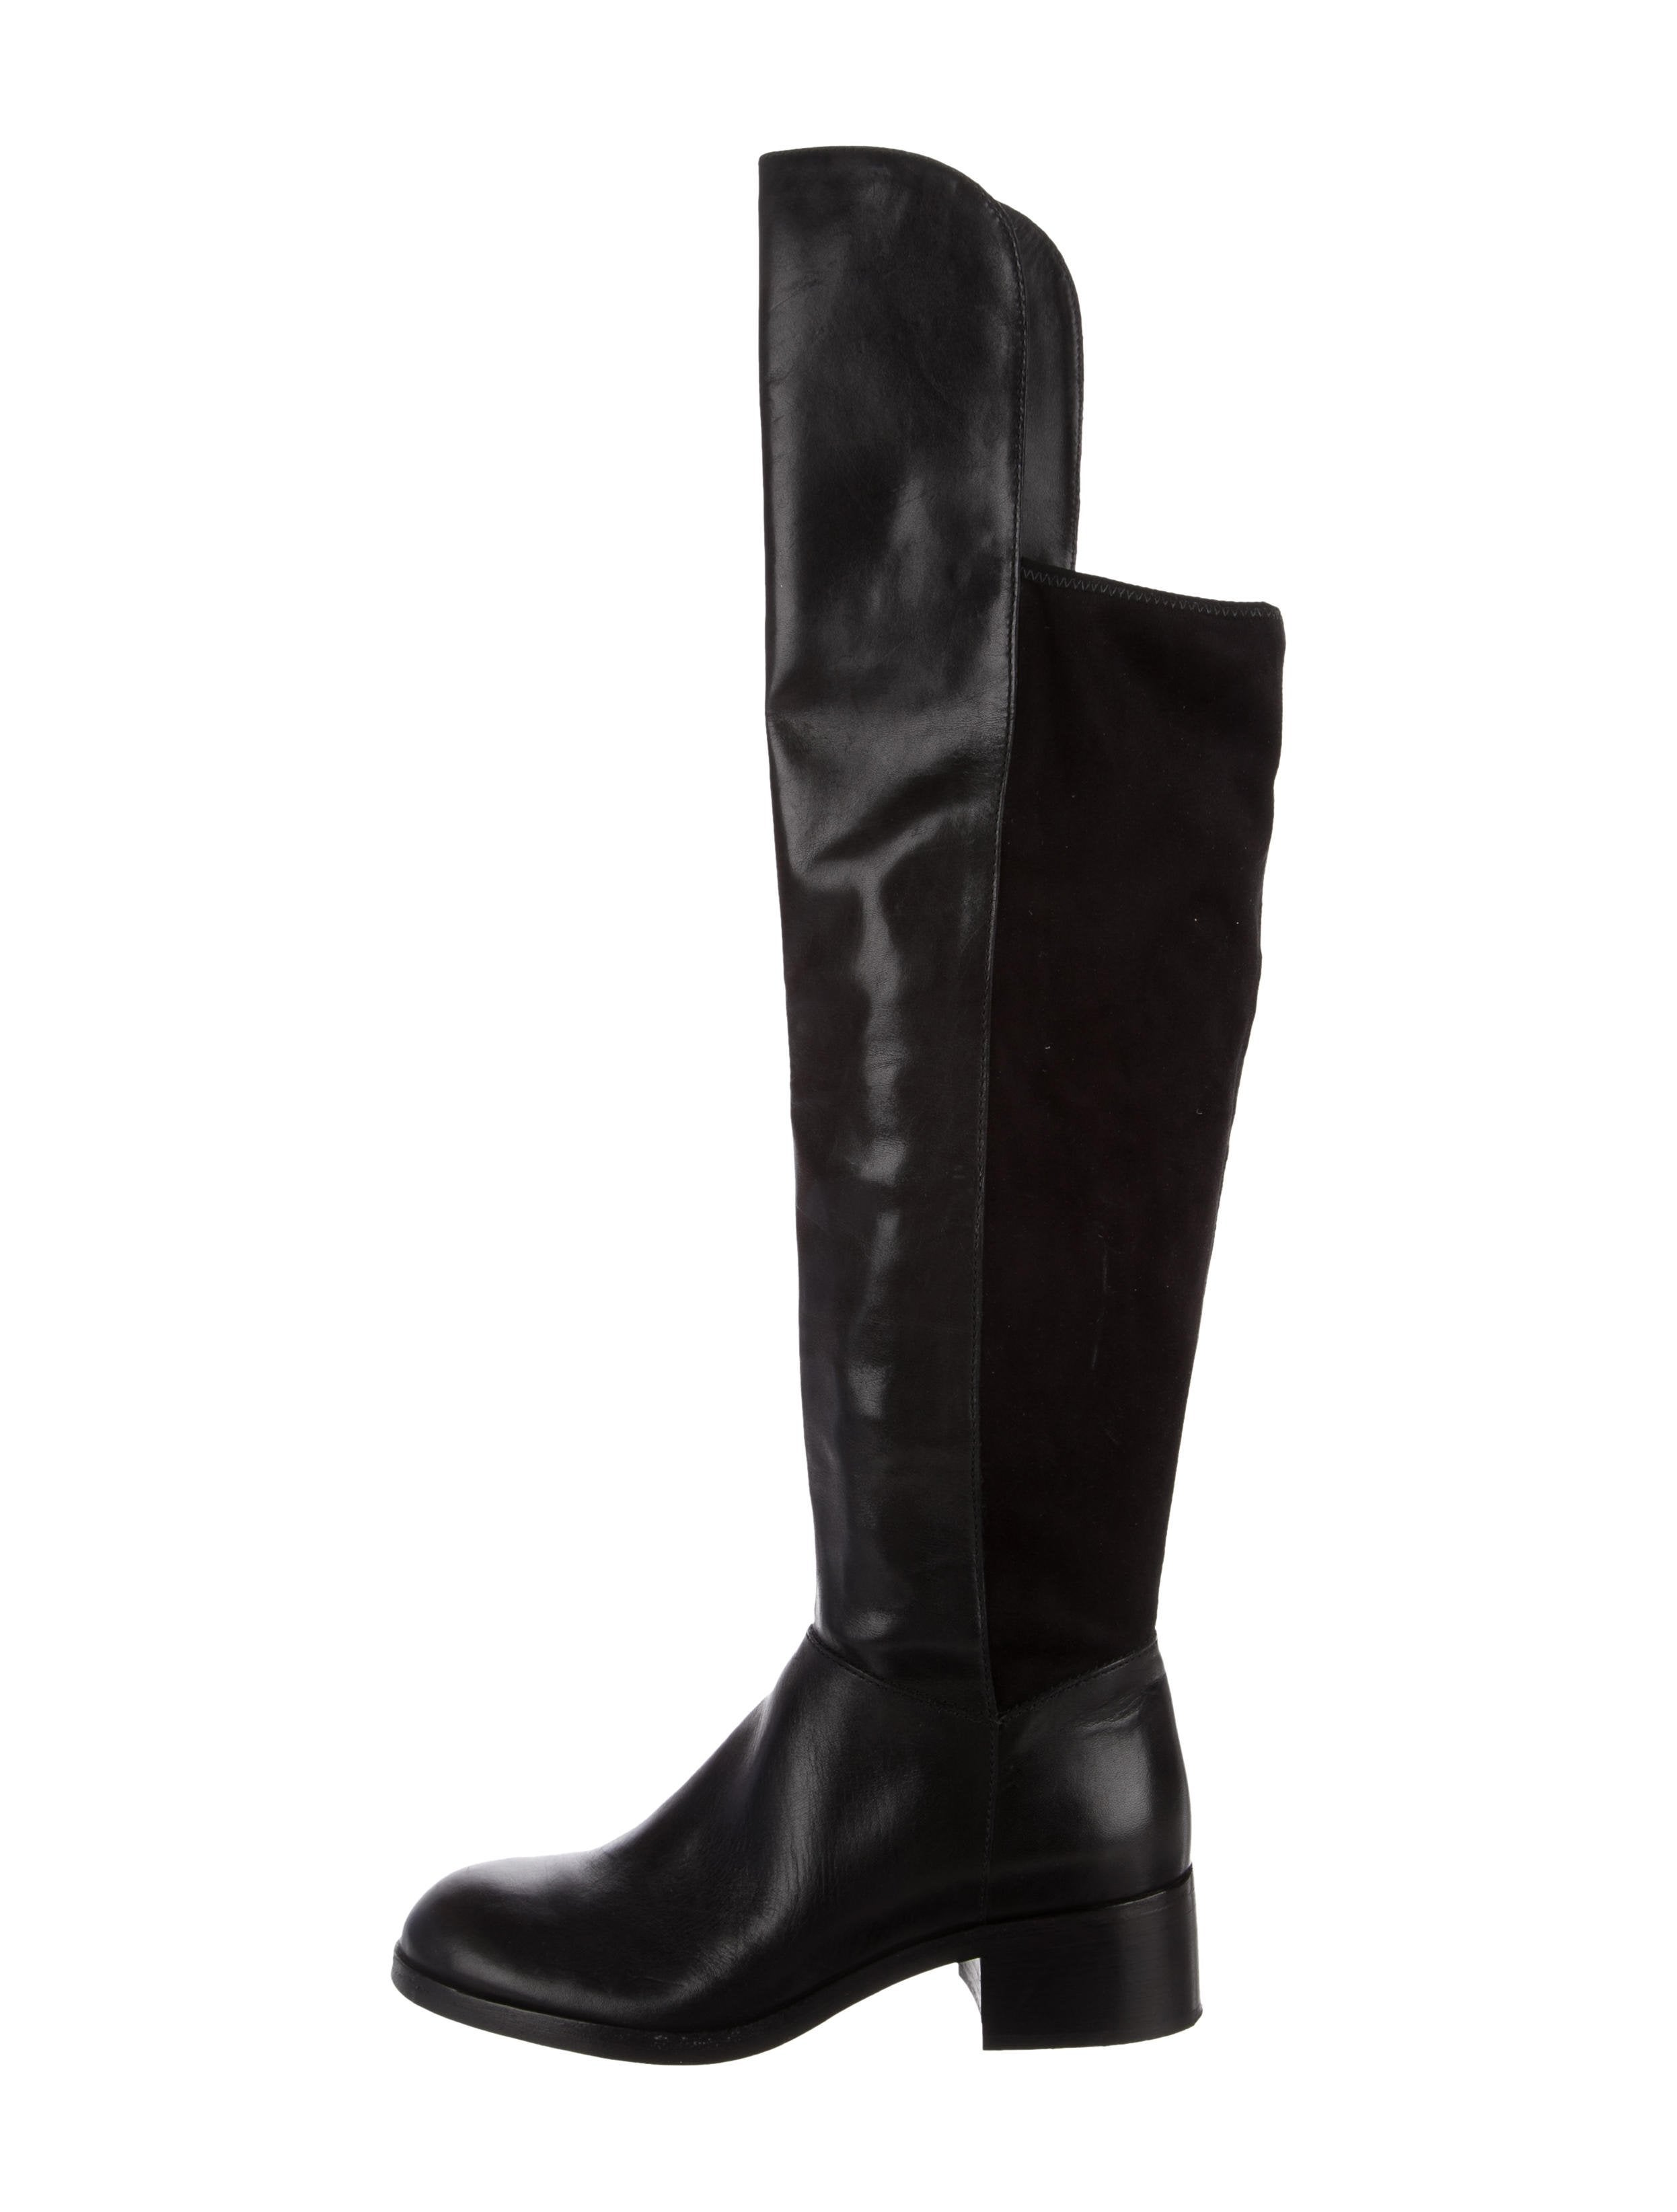 Marc by Marc Jacobs Marc Jacobs Knee-High Round-Toe Boots outlet locations cheap online LtMW7kOiy